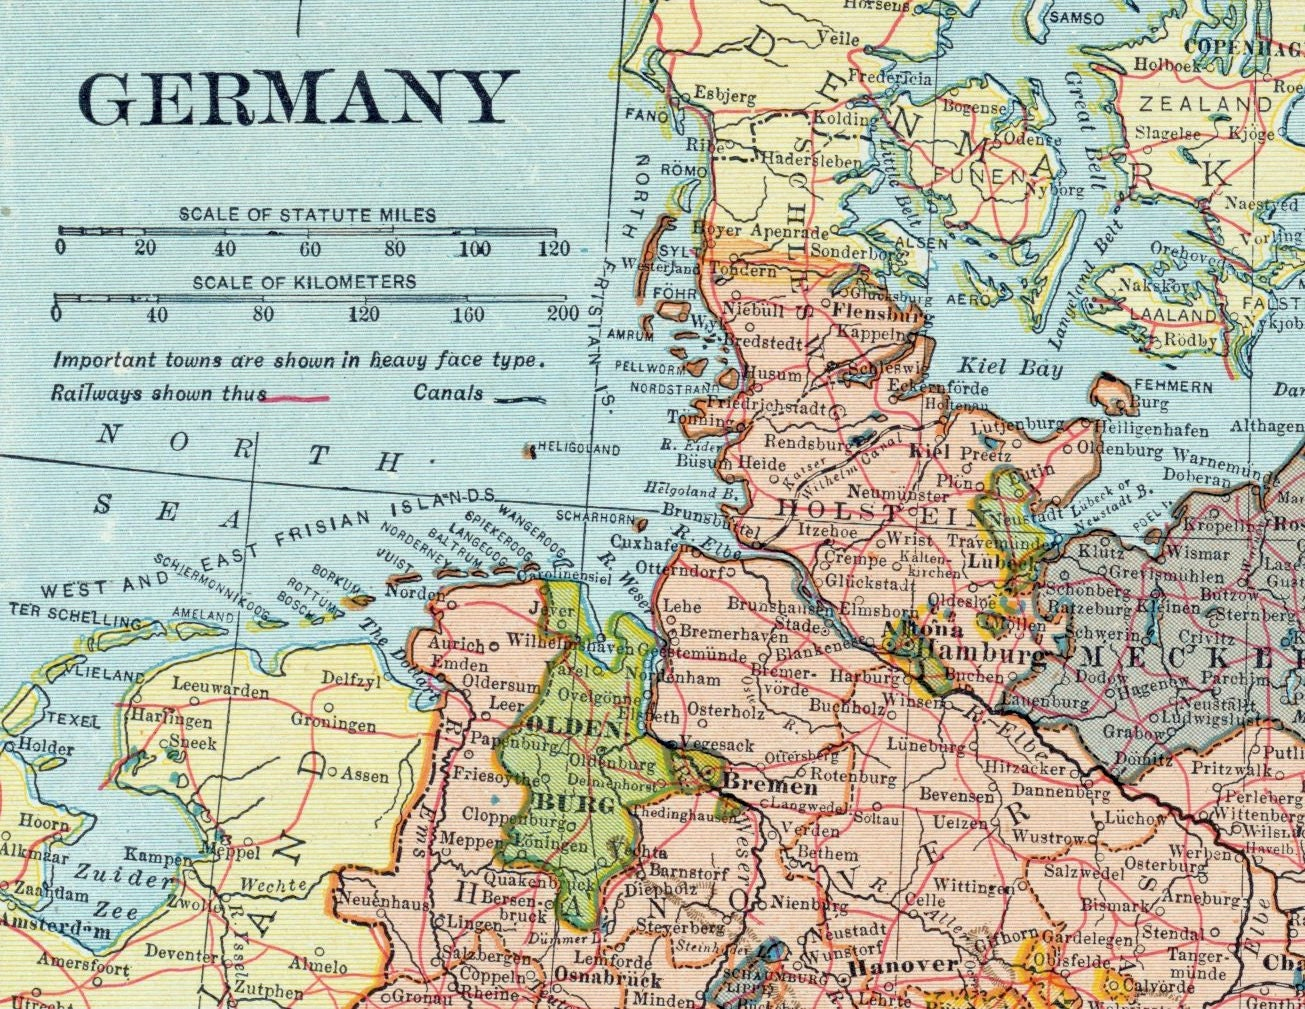 Vintage Map Of Germany With Insets Of Hamburg And Berlin - Germany map full